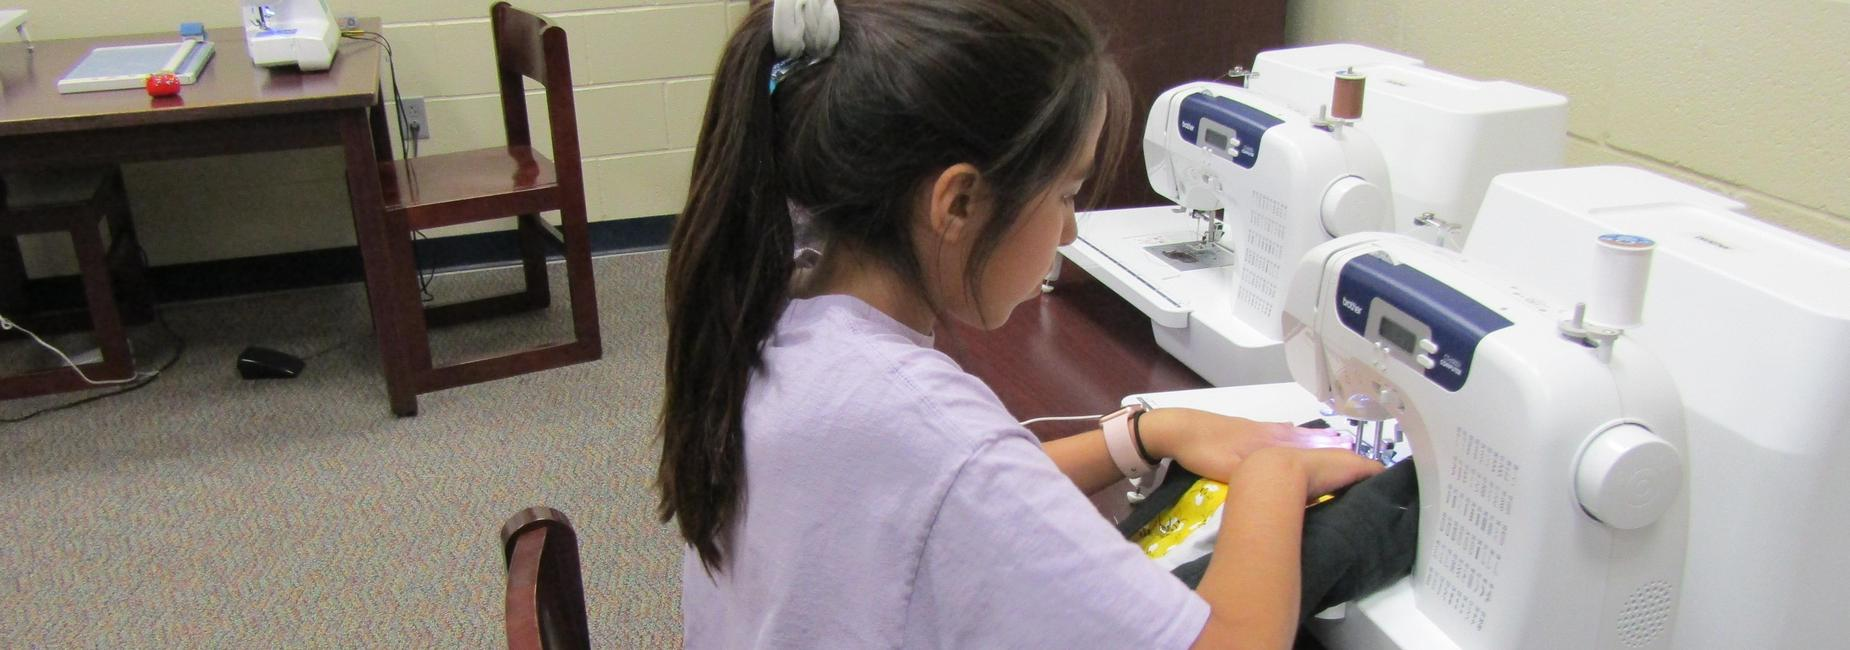 Student sewing.